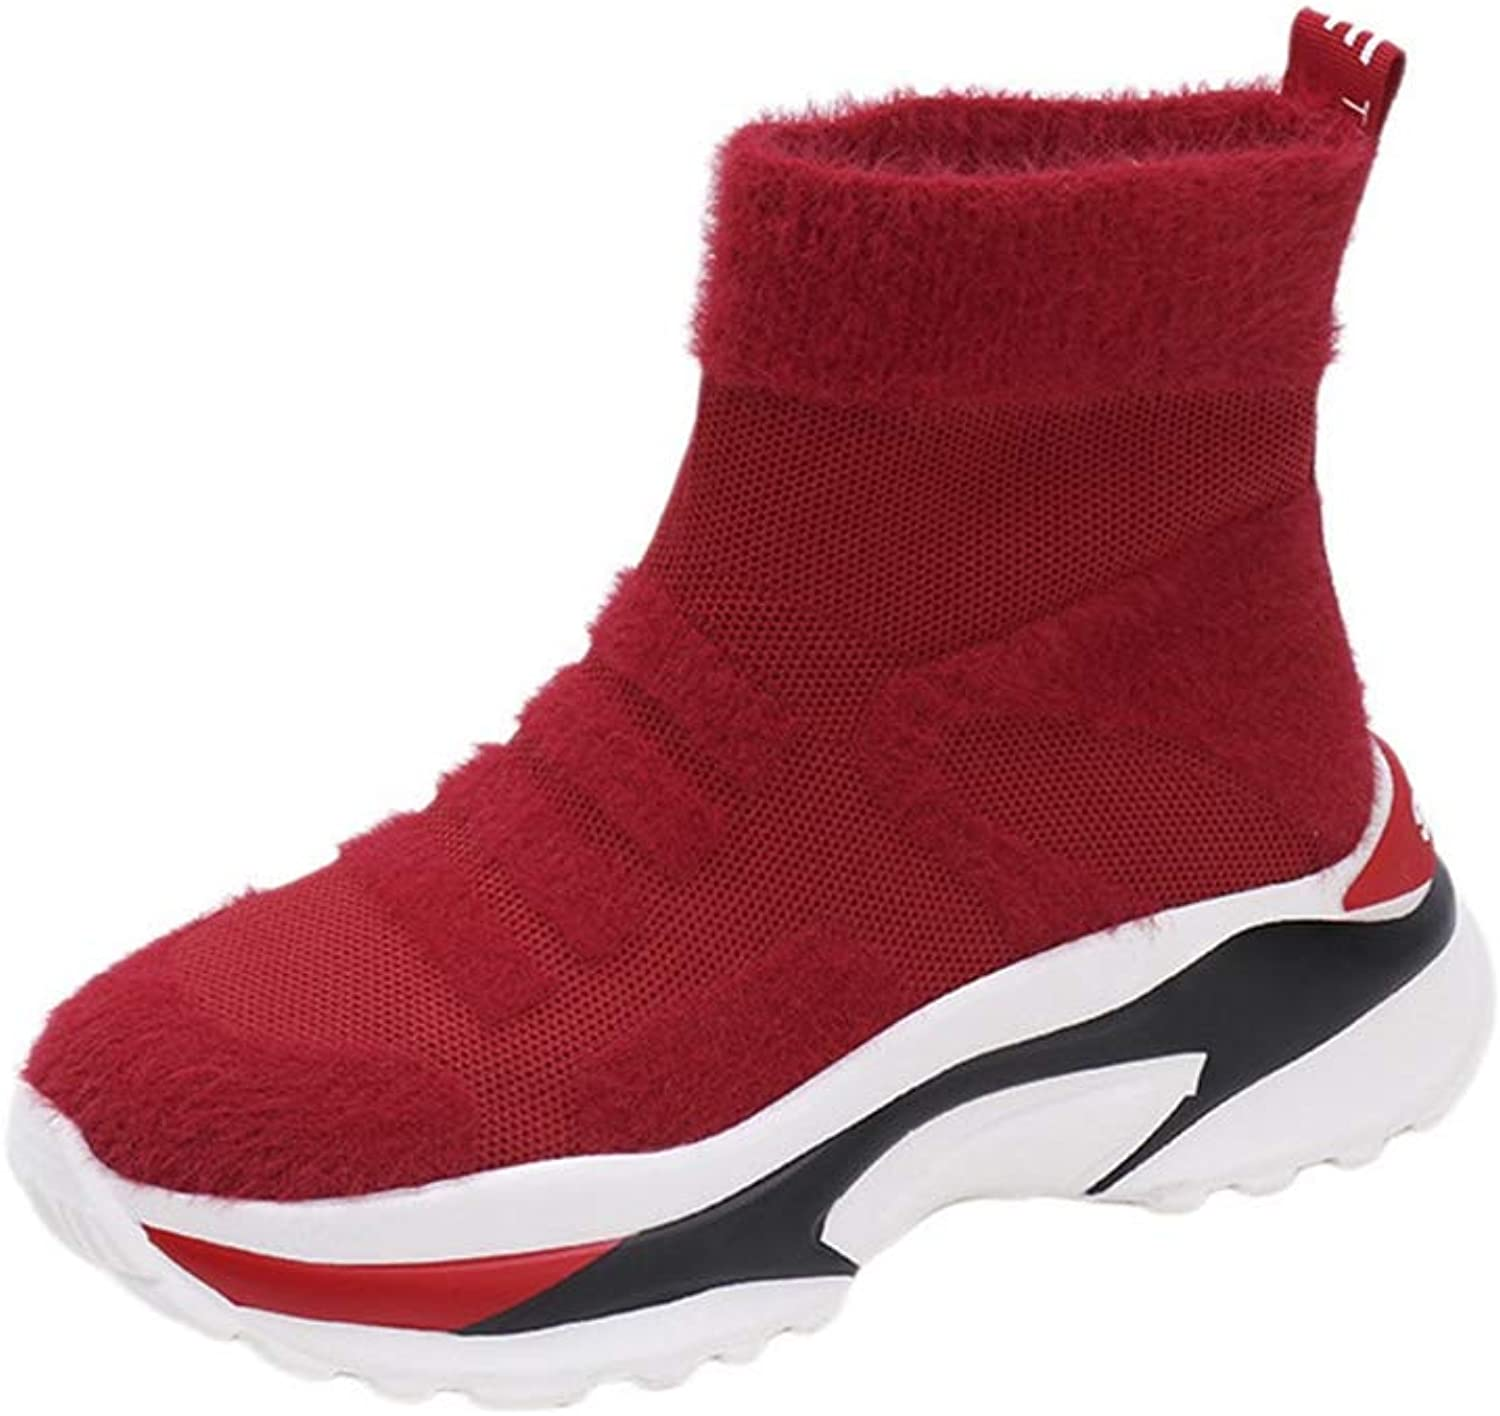 Women's Lightweight Ankle Boots Elastic Knit High Top Socks Sneakers, Anti-Skid Wedge shoes